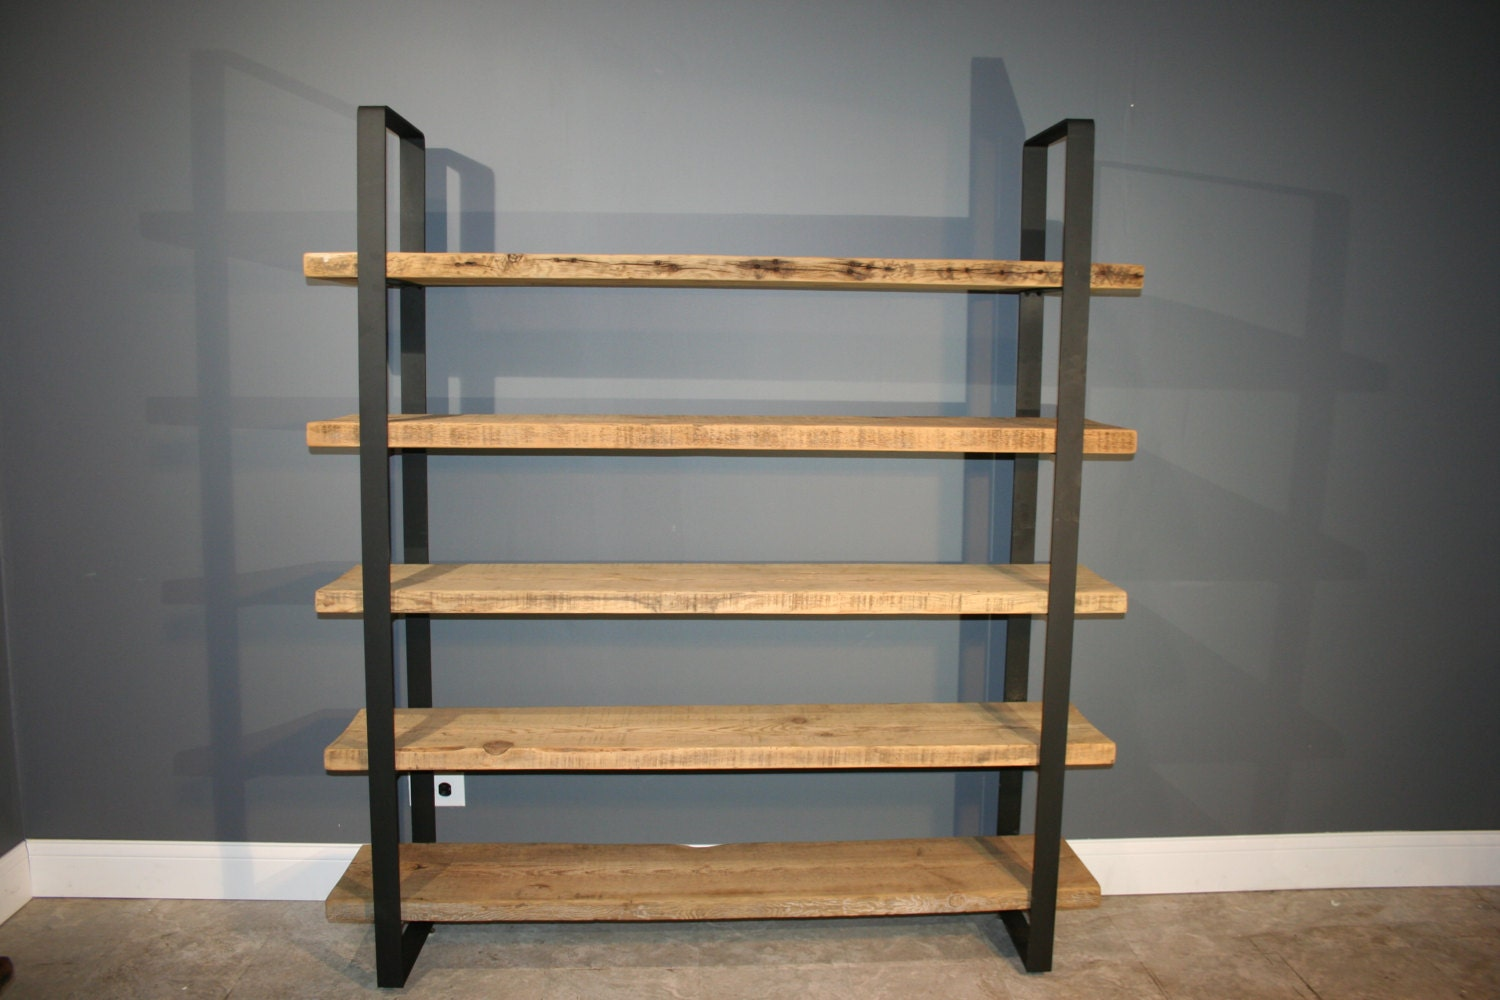 Reclaimed Wood And Metal Wall Shelves: Reclaimed Wood Shelf/Shelving Unit With 5 By